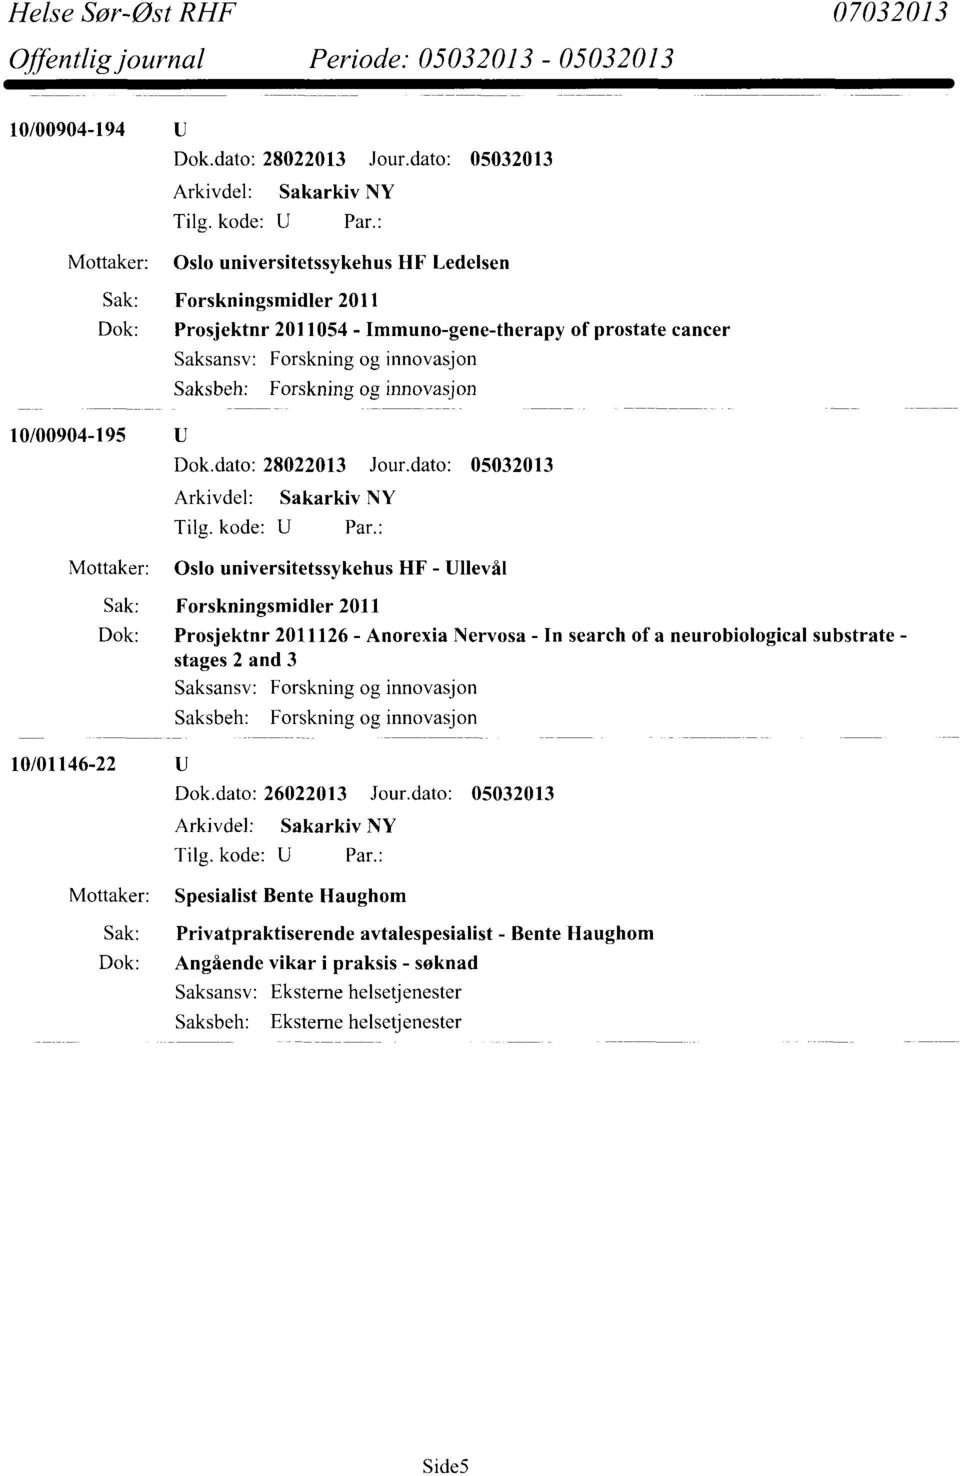 Nervosa - In search of a neurobiological substrate - stages 2 and 3 10/01146-22 Dok.dato: 26022013 Jour.